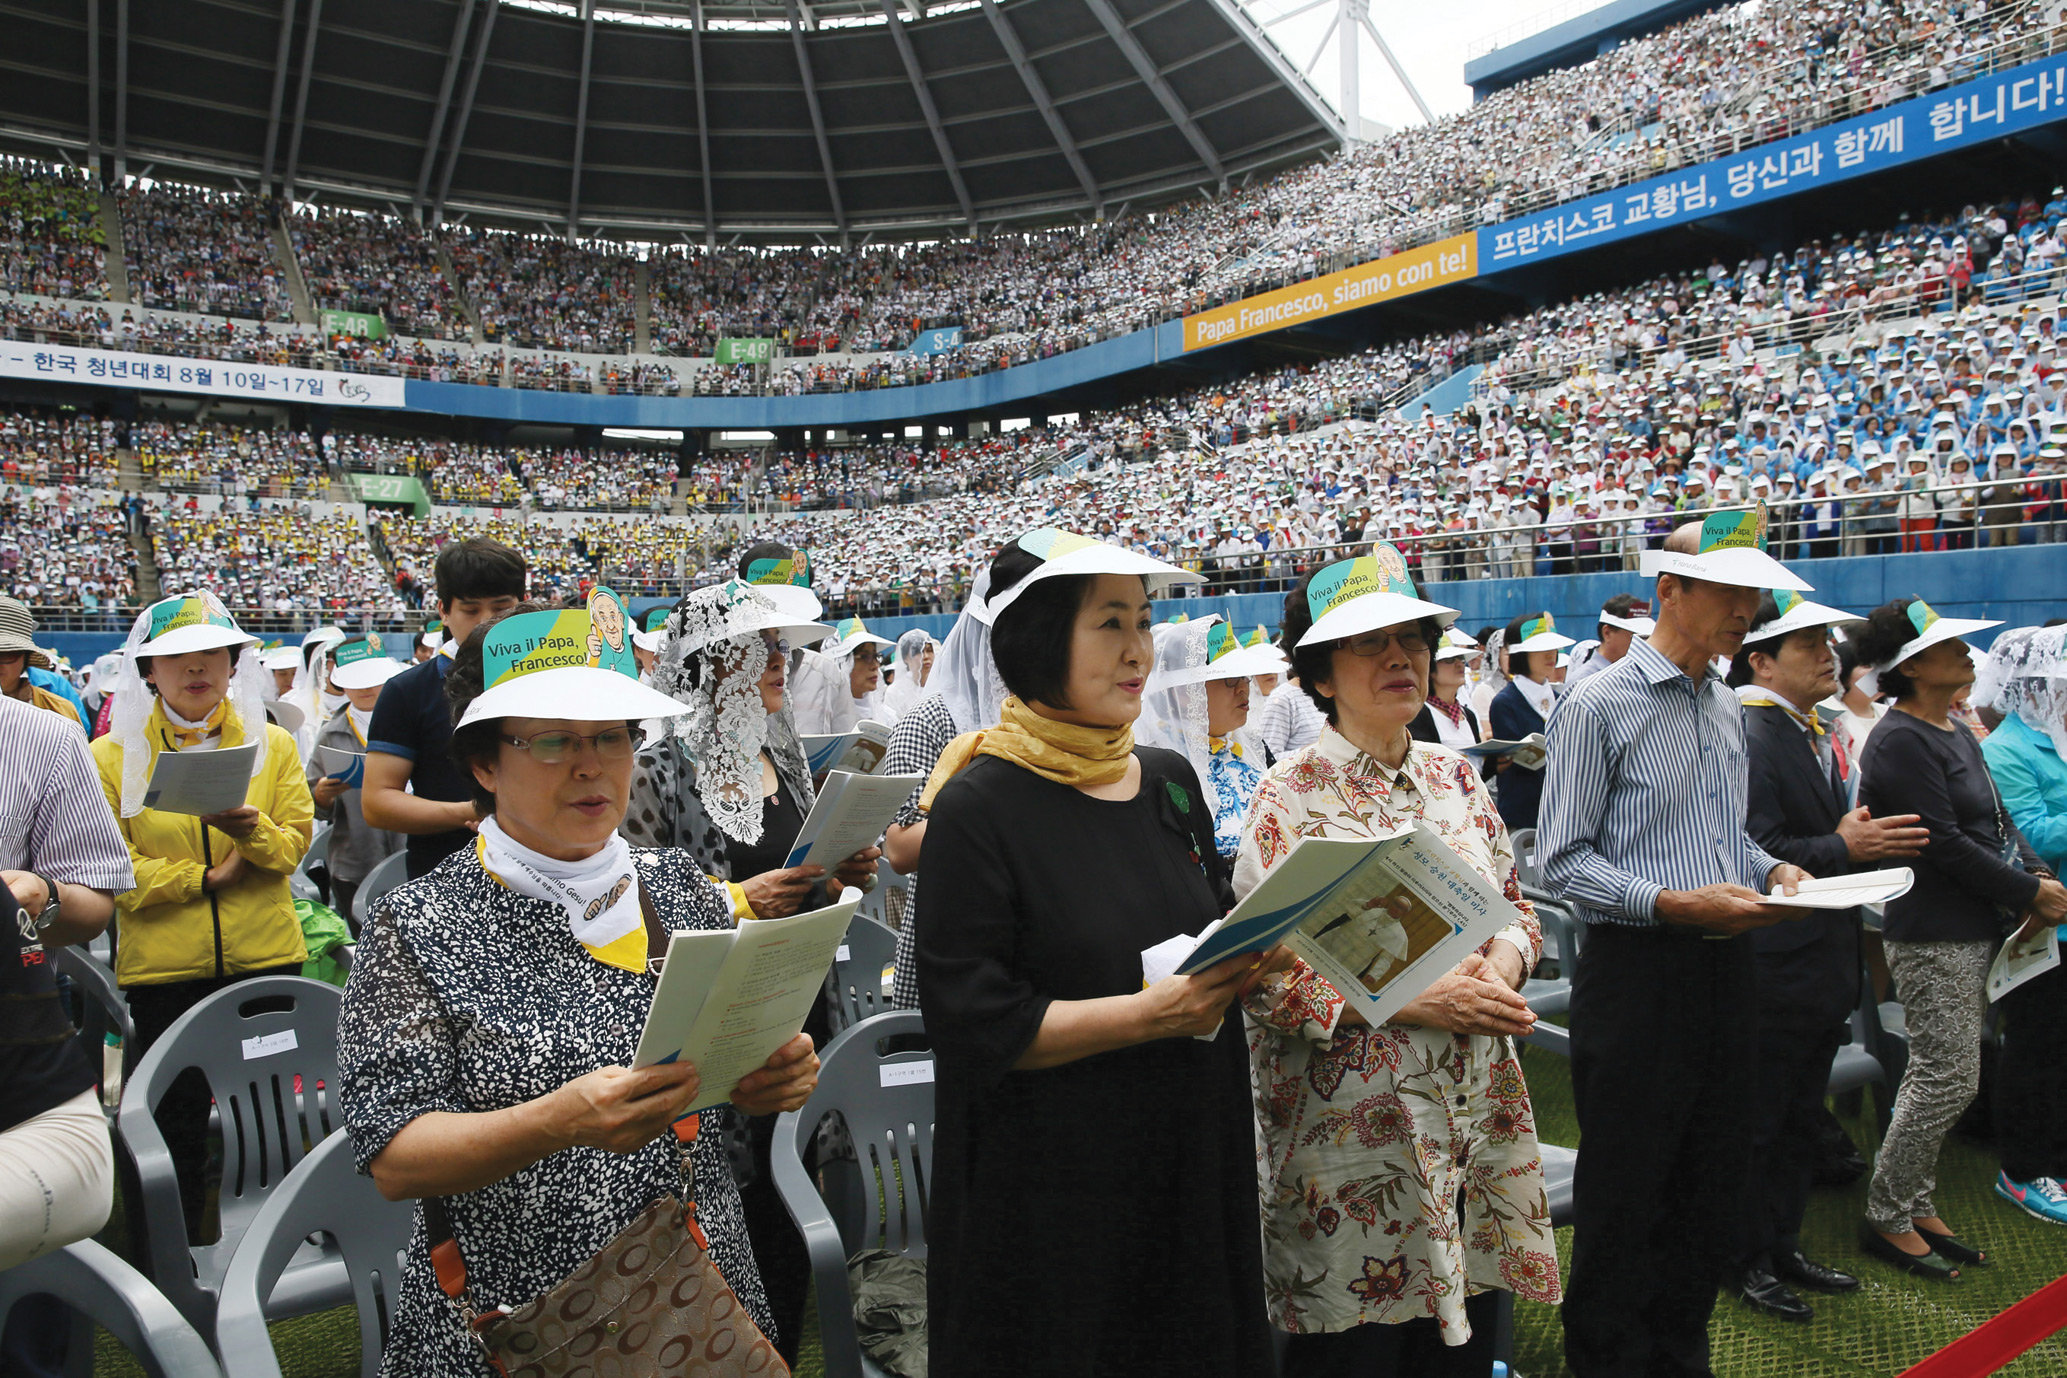 In World Cup Stadium during Holy Mass celebrated on the Solemnity of the Assumption of the Blessed Virgin Mary.